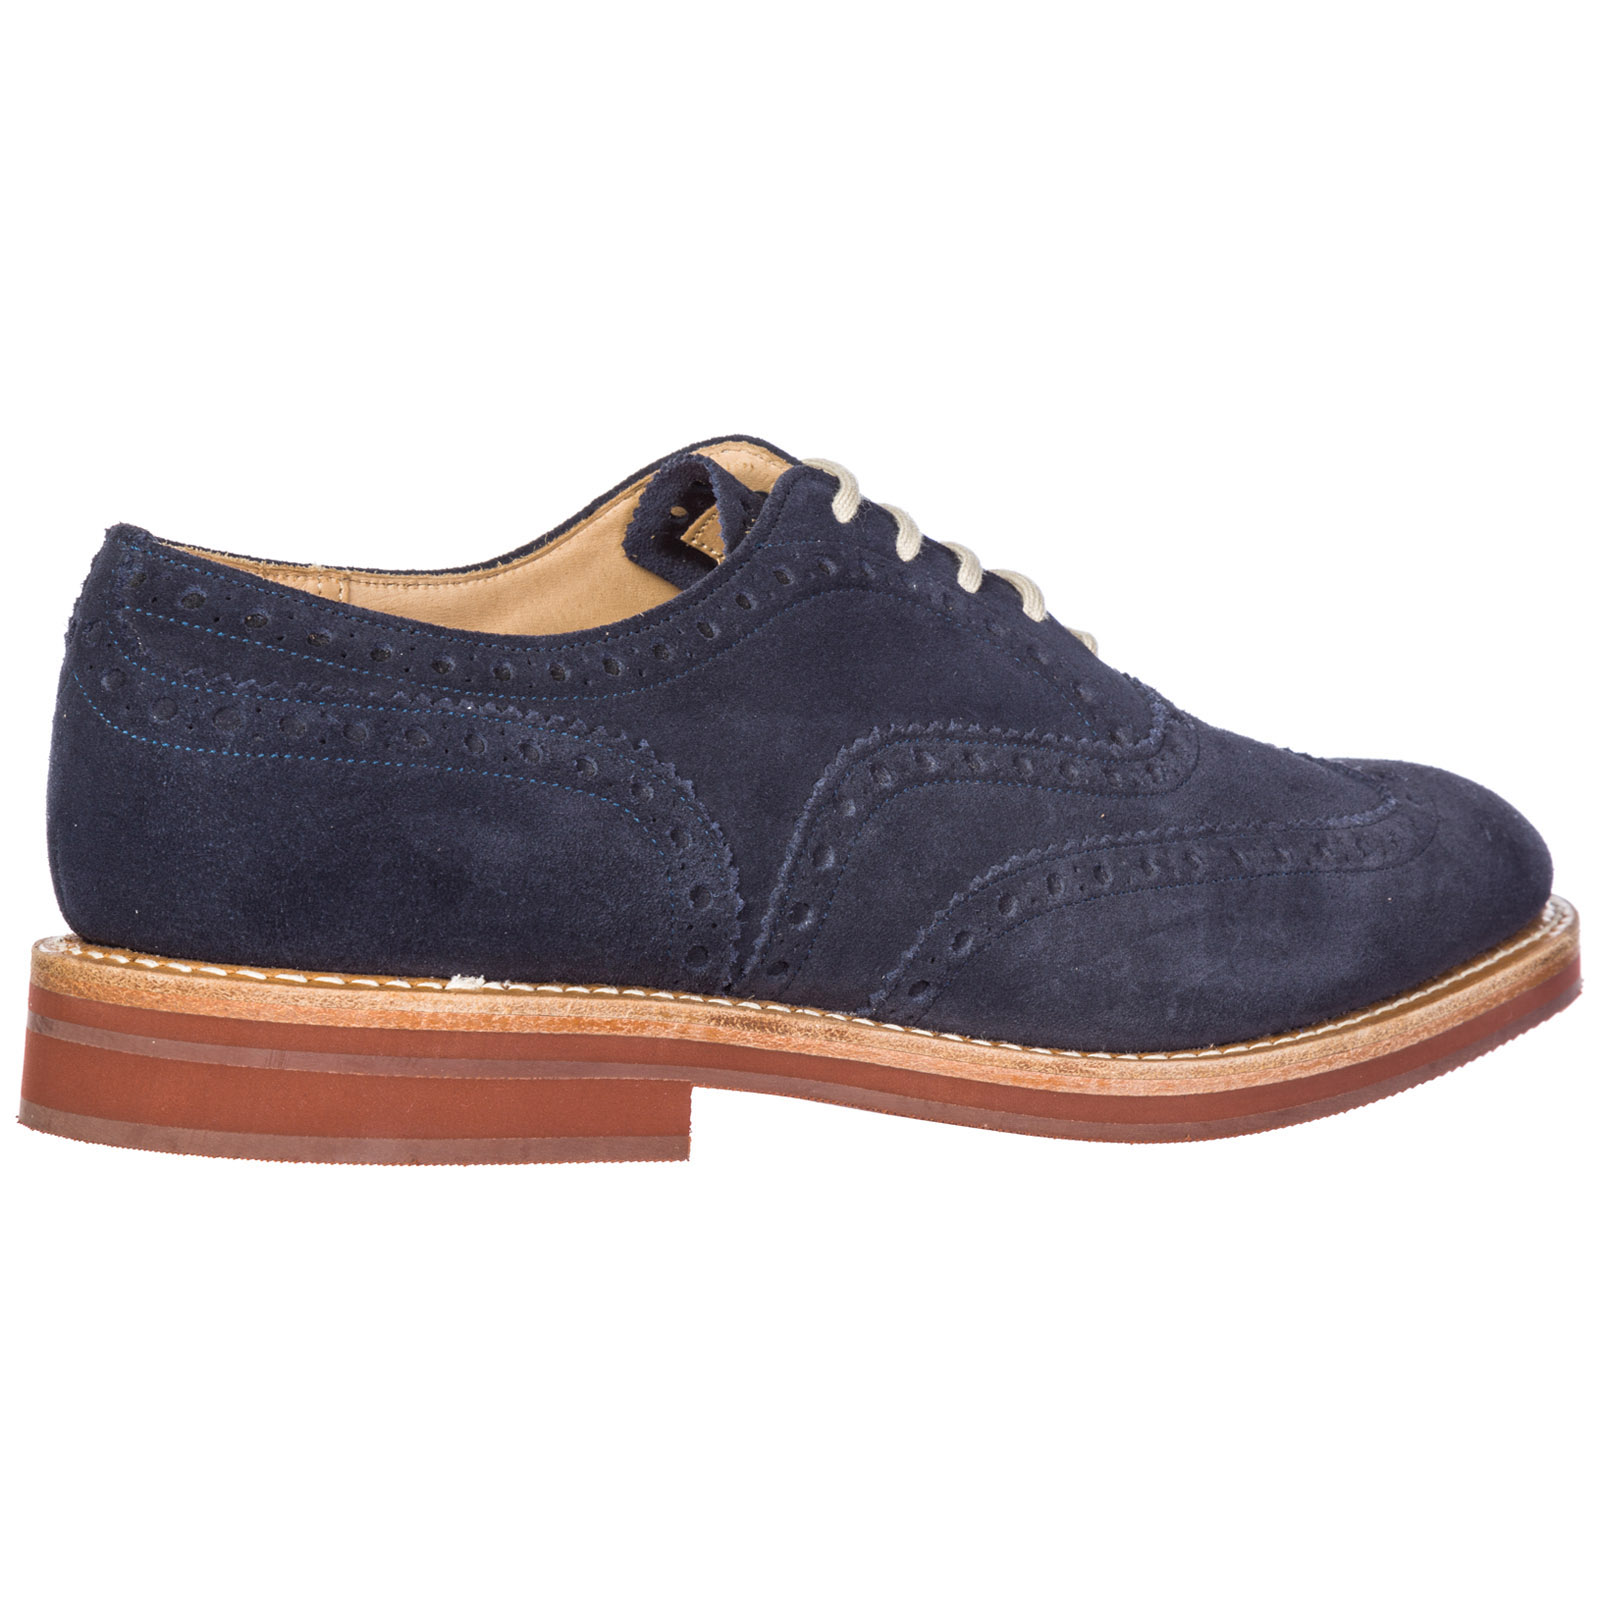 Men's classic suede lace up laced formal shoes downton